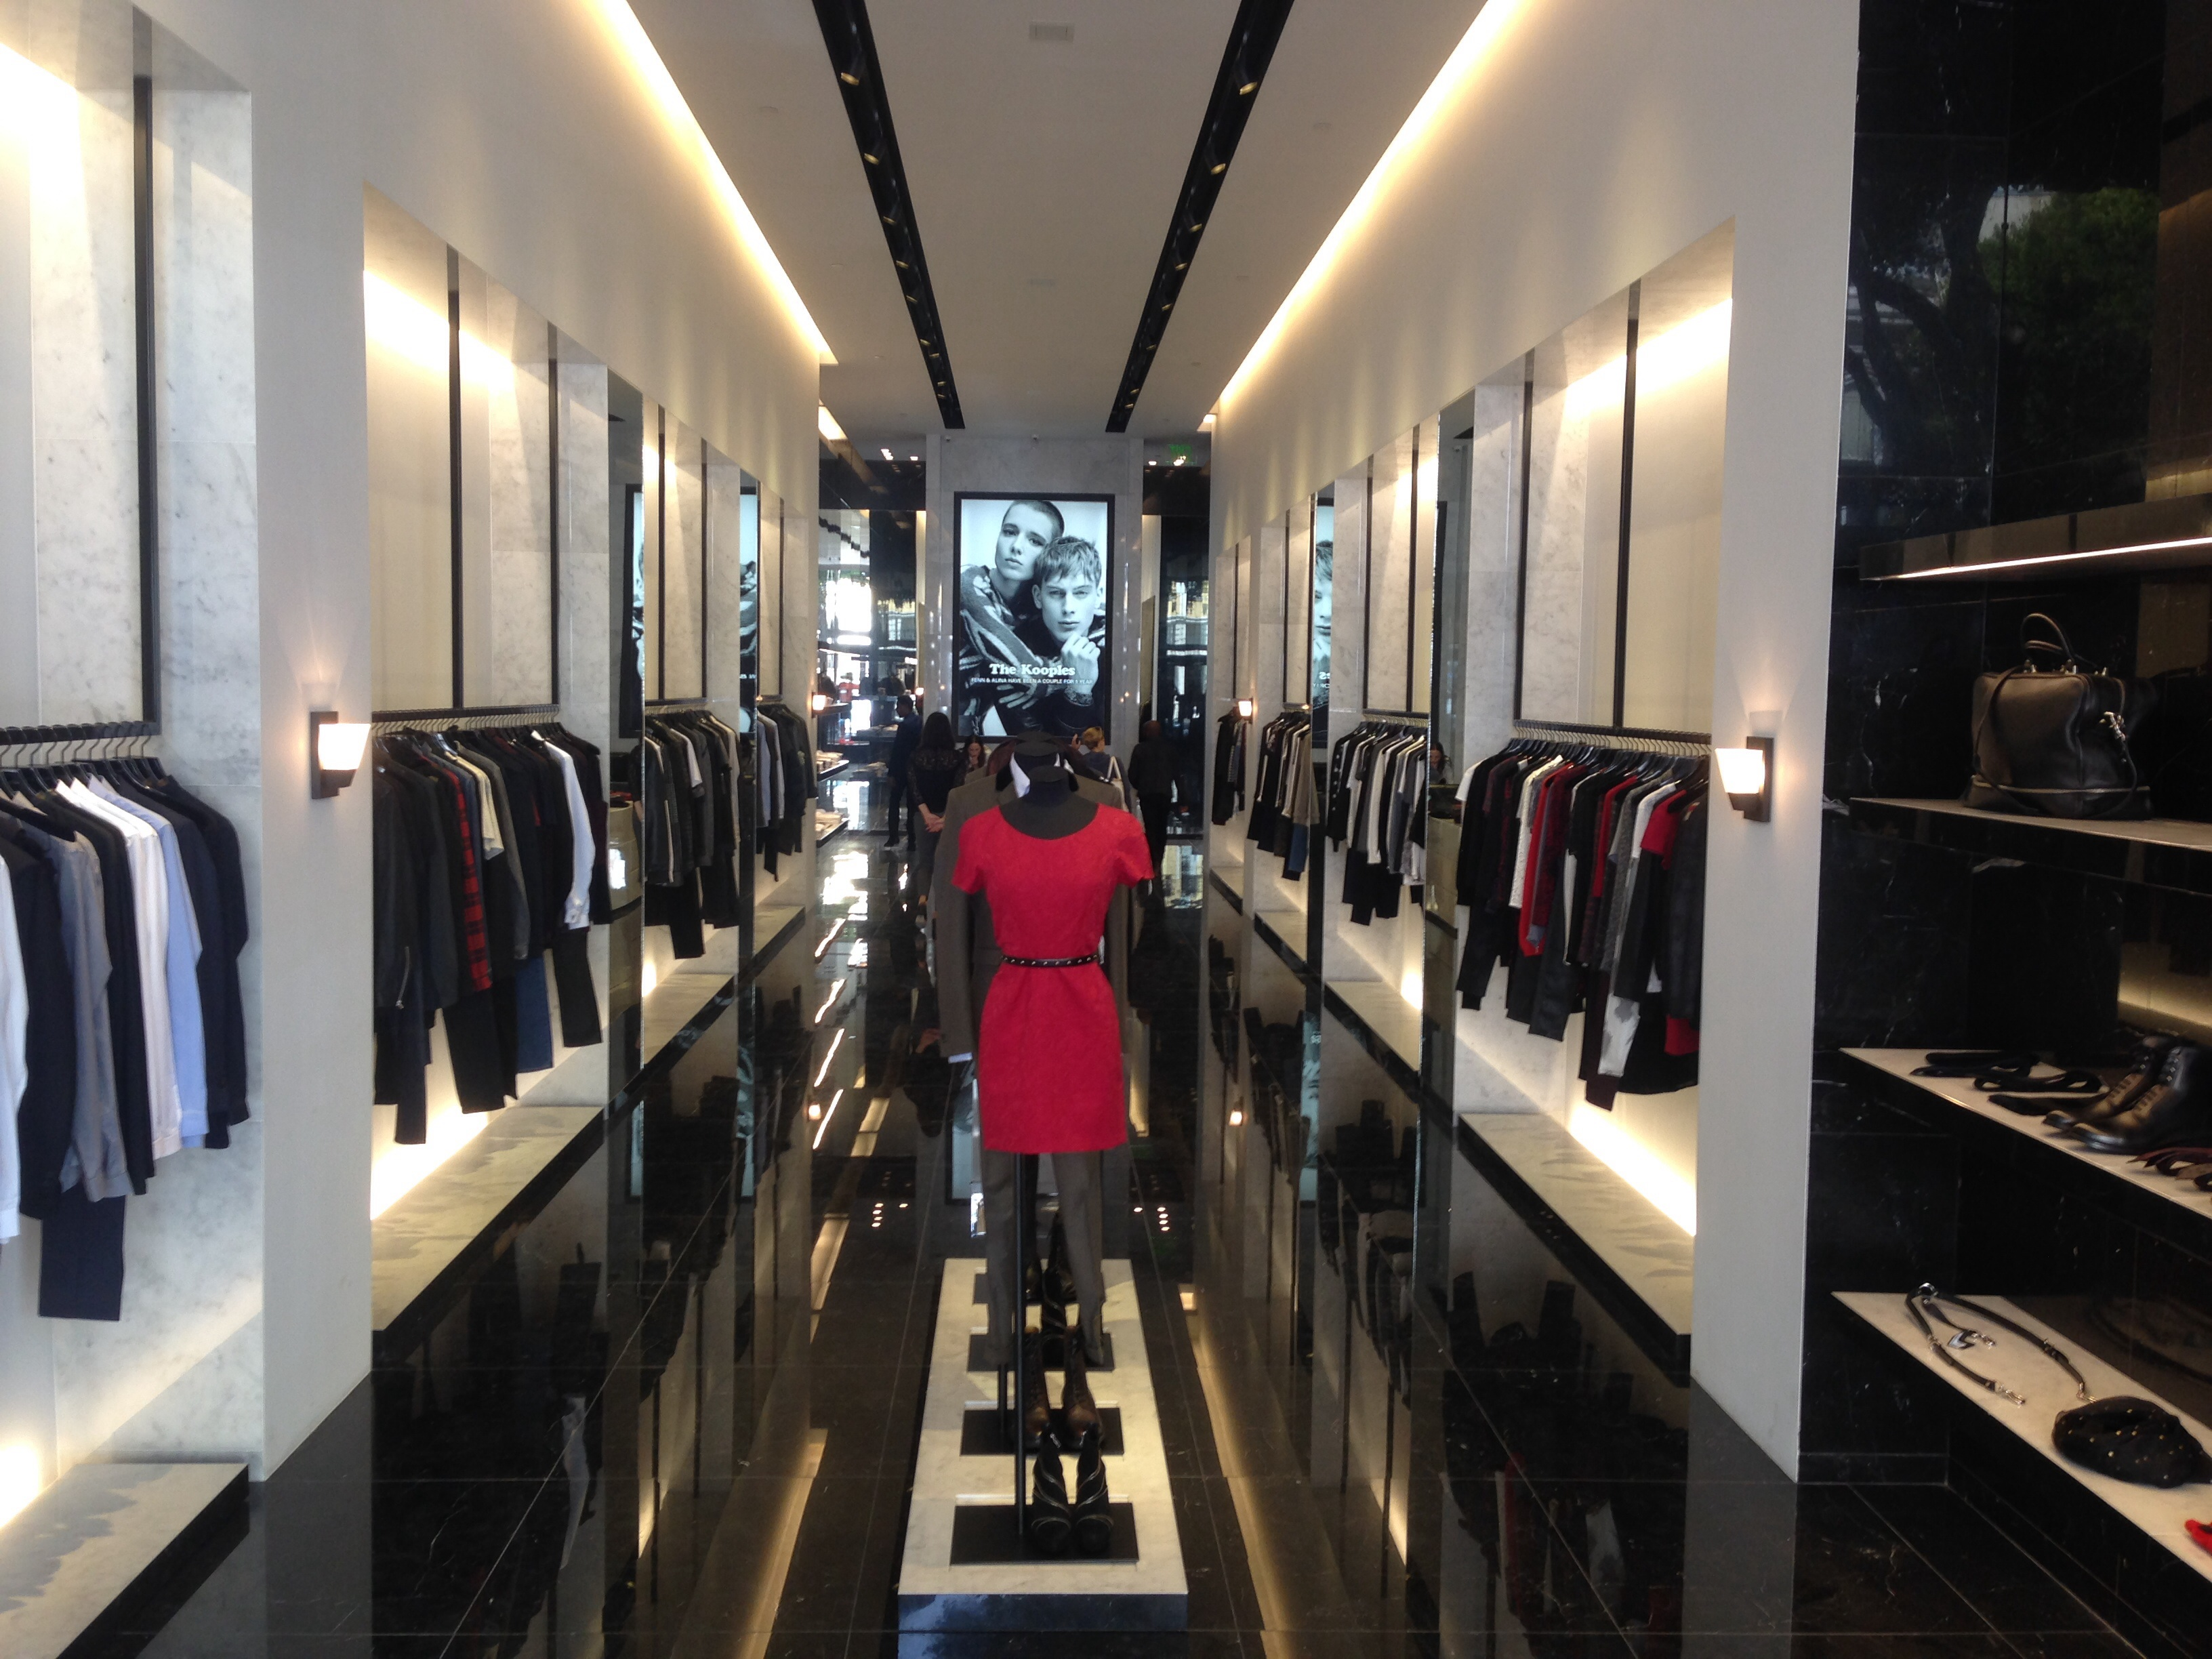 """Inside The Kooples; photo via <a href=""""http://sf.racked.com/archives/2014/06/30/the-kooples-is-now-open-on-fillmore.php"""">Racked SF</a>"""